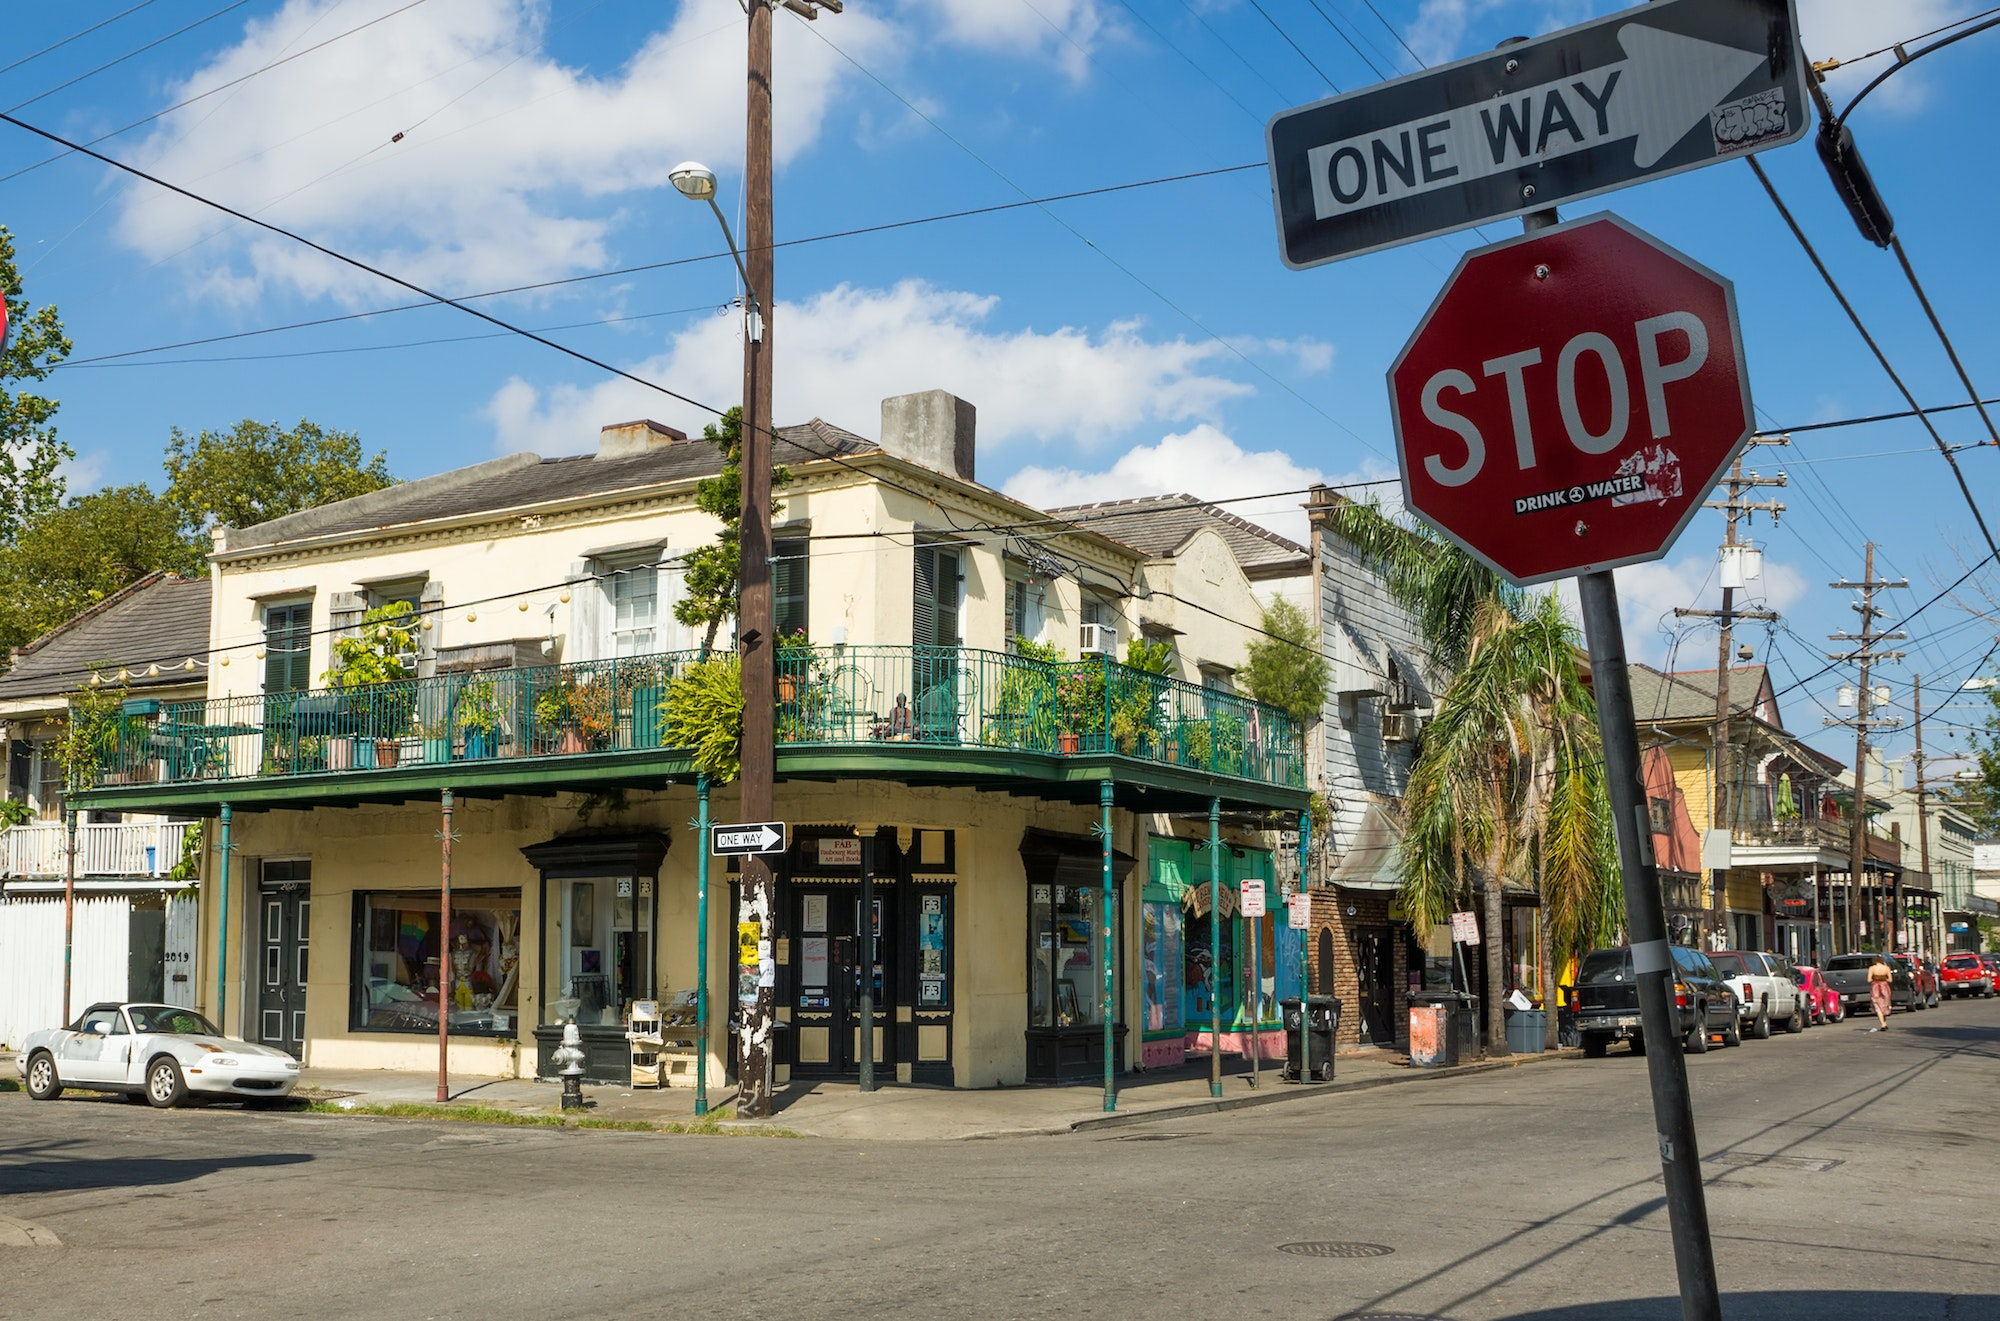 Cafés and shops line the streets of Faubourg Marigny, a bohemian New Orleans neighborhood east of the French Quarter.